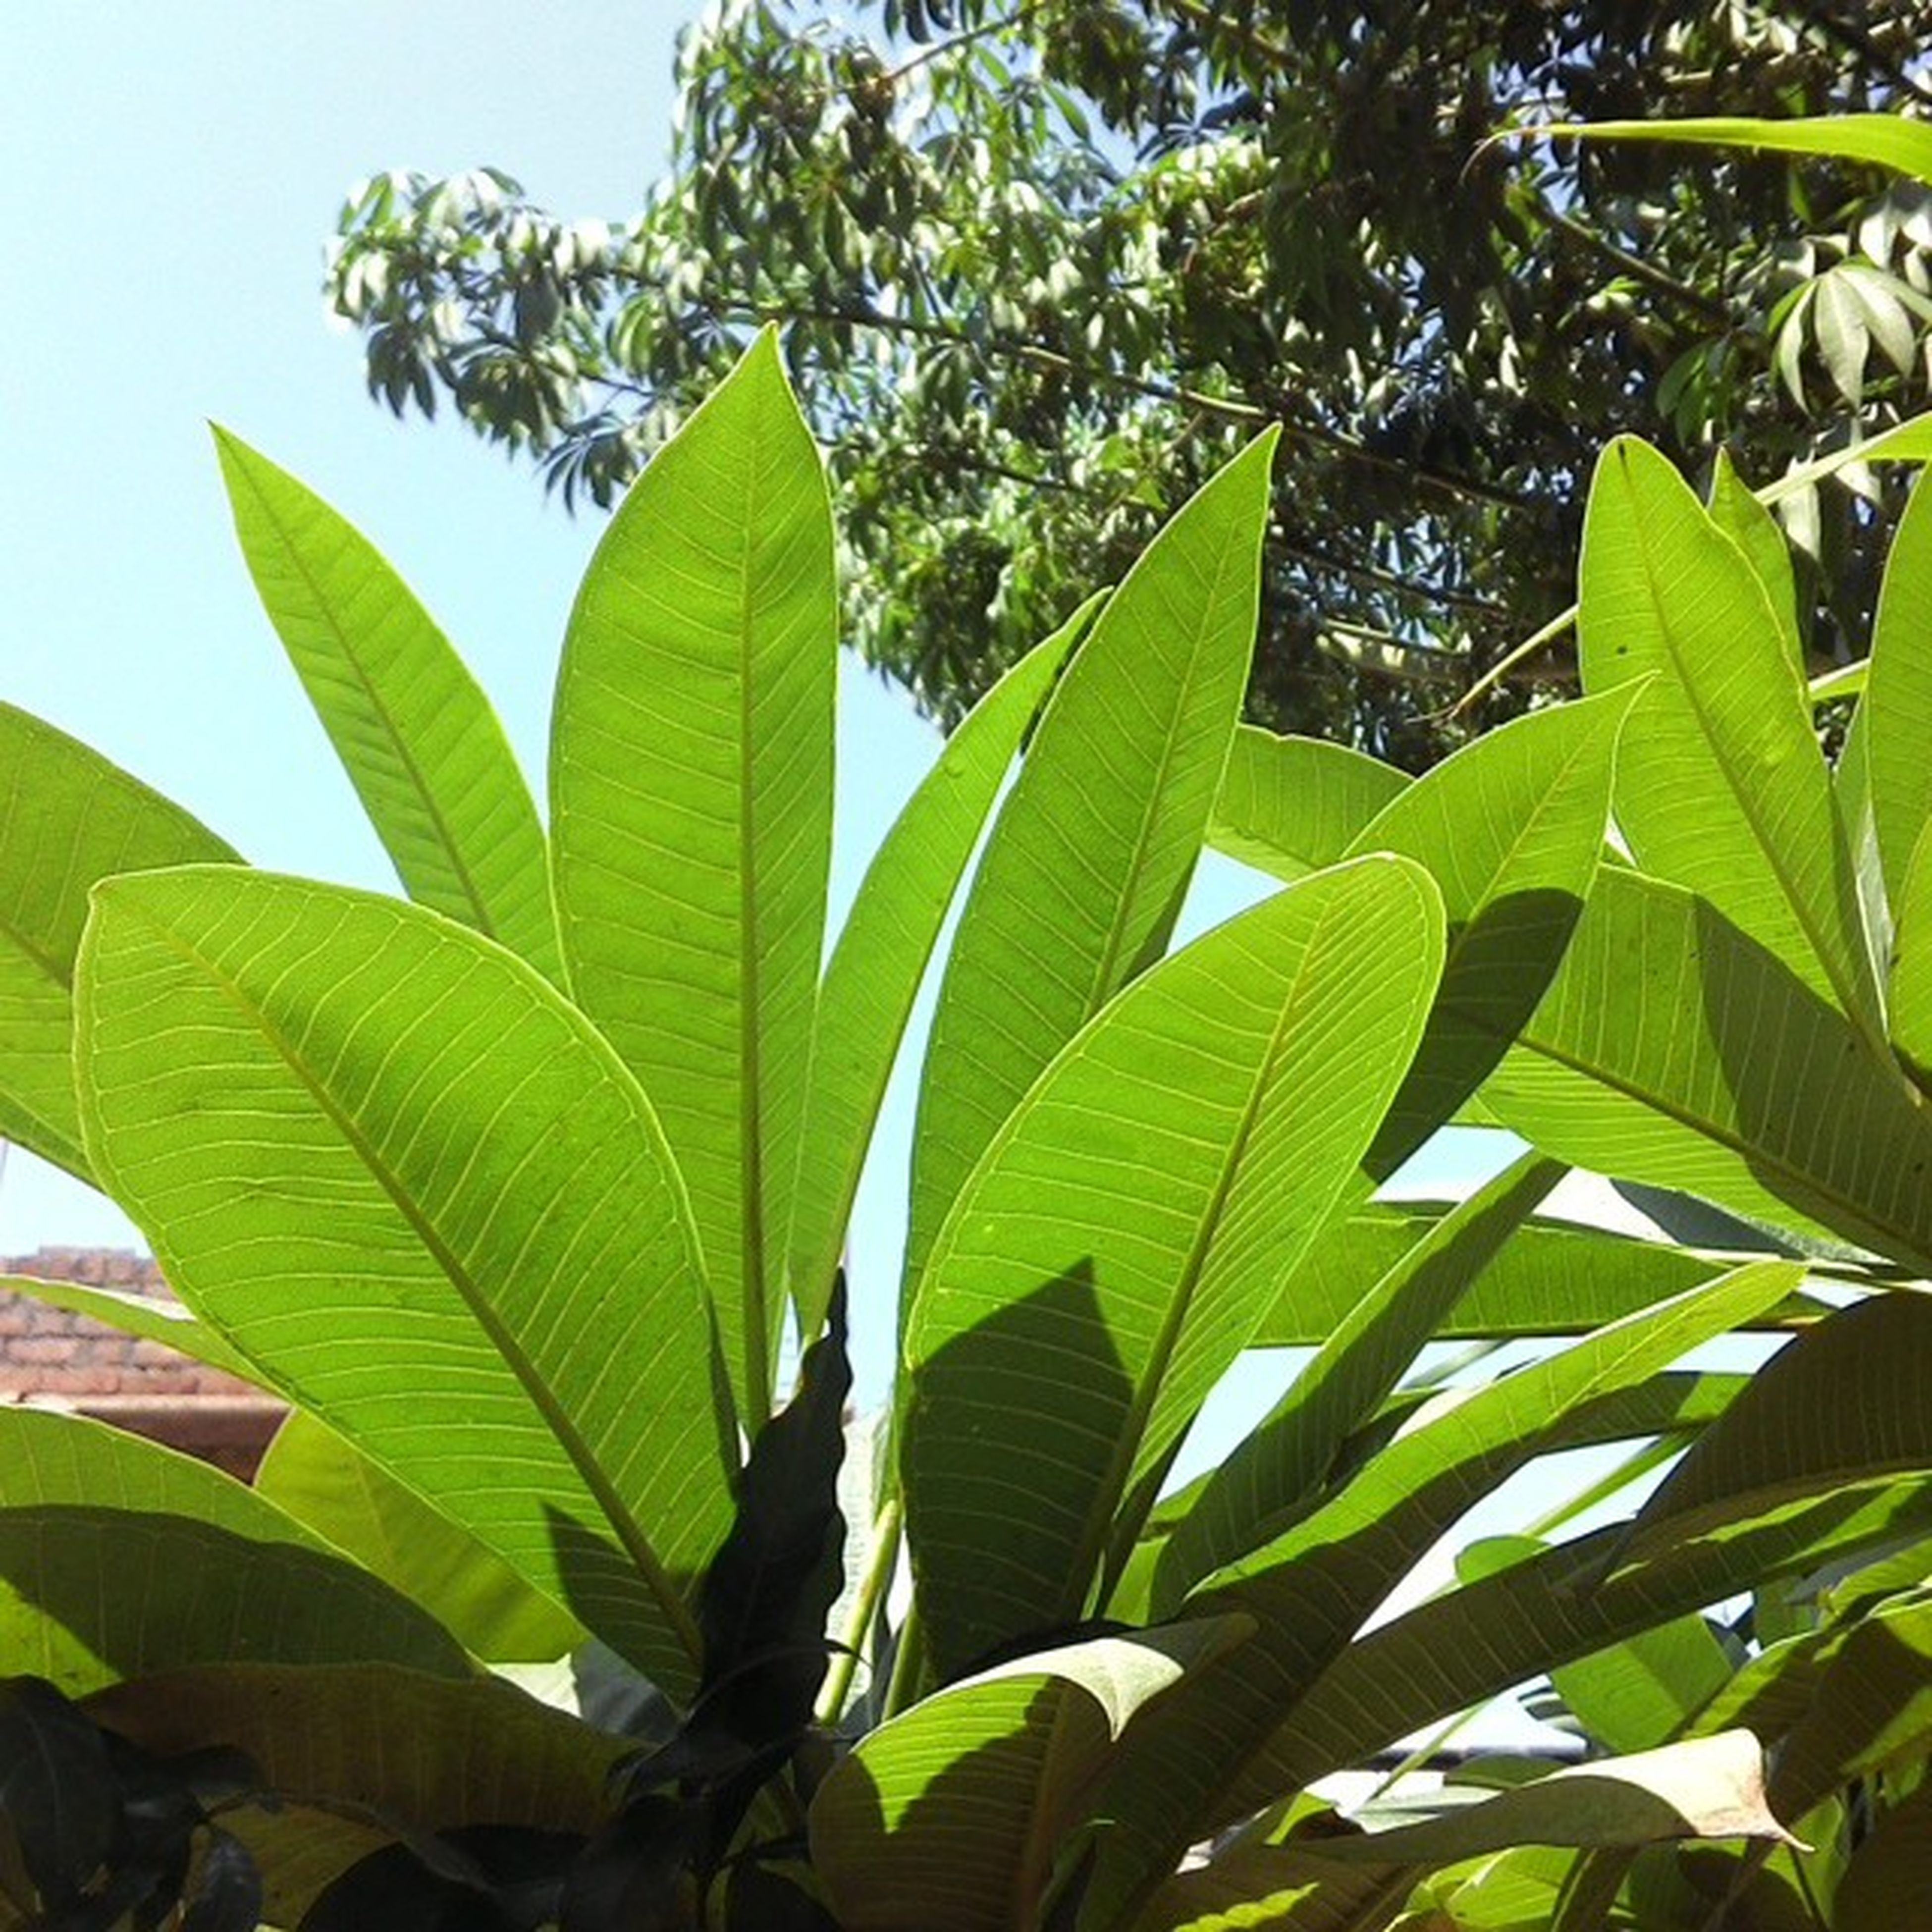 leaf, growth, green color, plant, nature, tree, close-up, leaf vein, low angle view, leaves, beauty in nature, branch, sunlight, outdoors, day, tranquility, green, sky, focus on foreground, no people